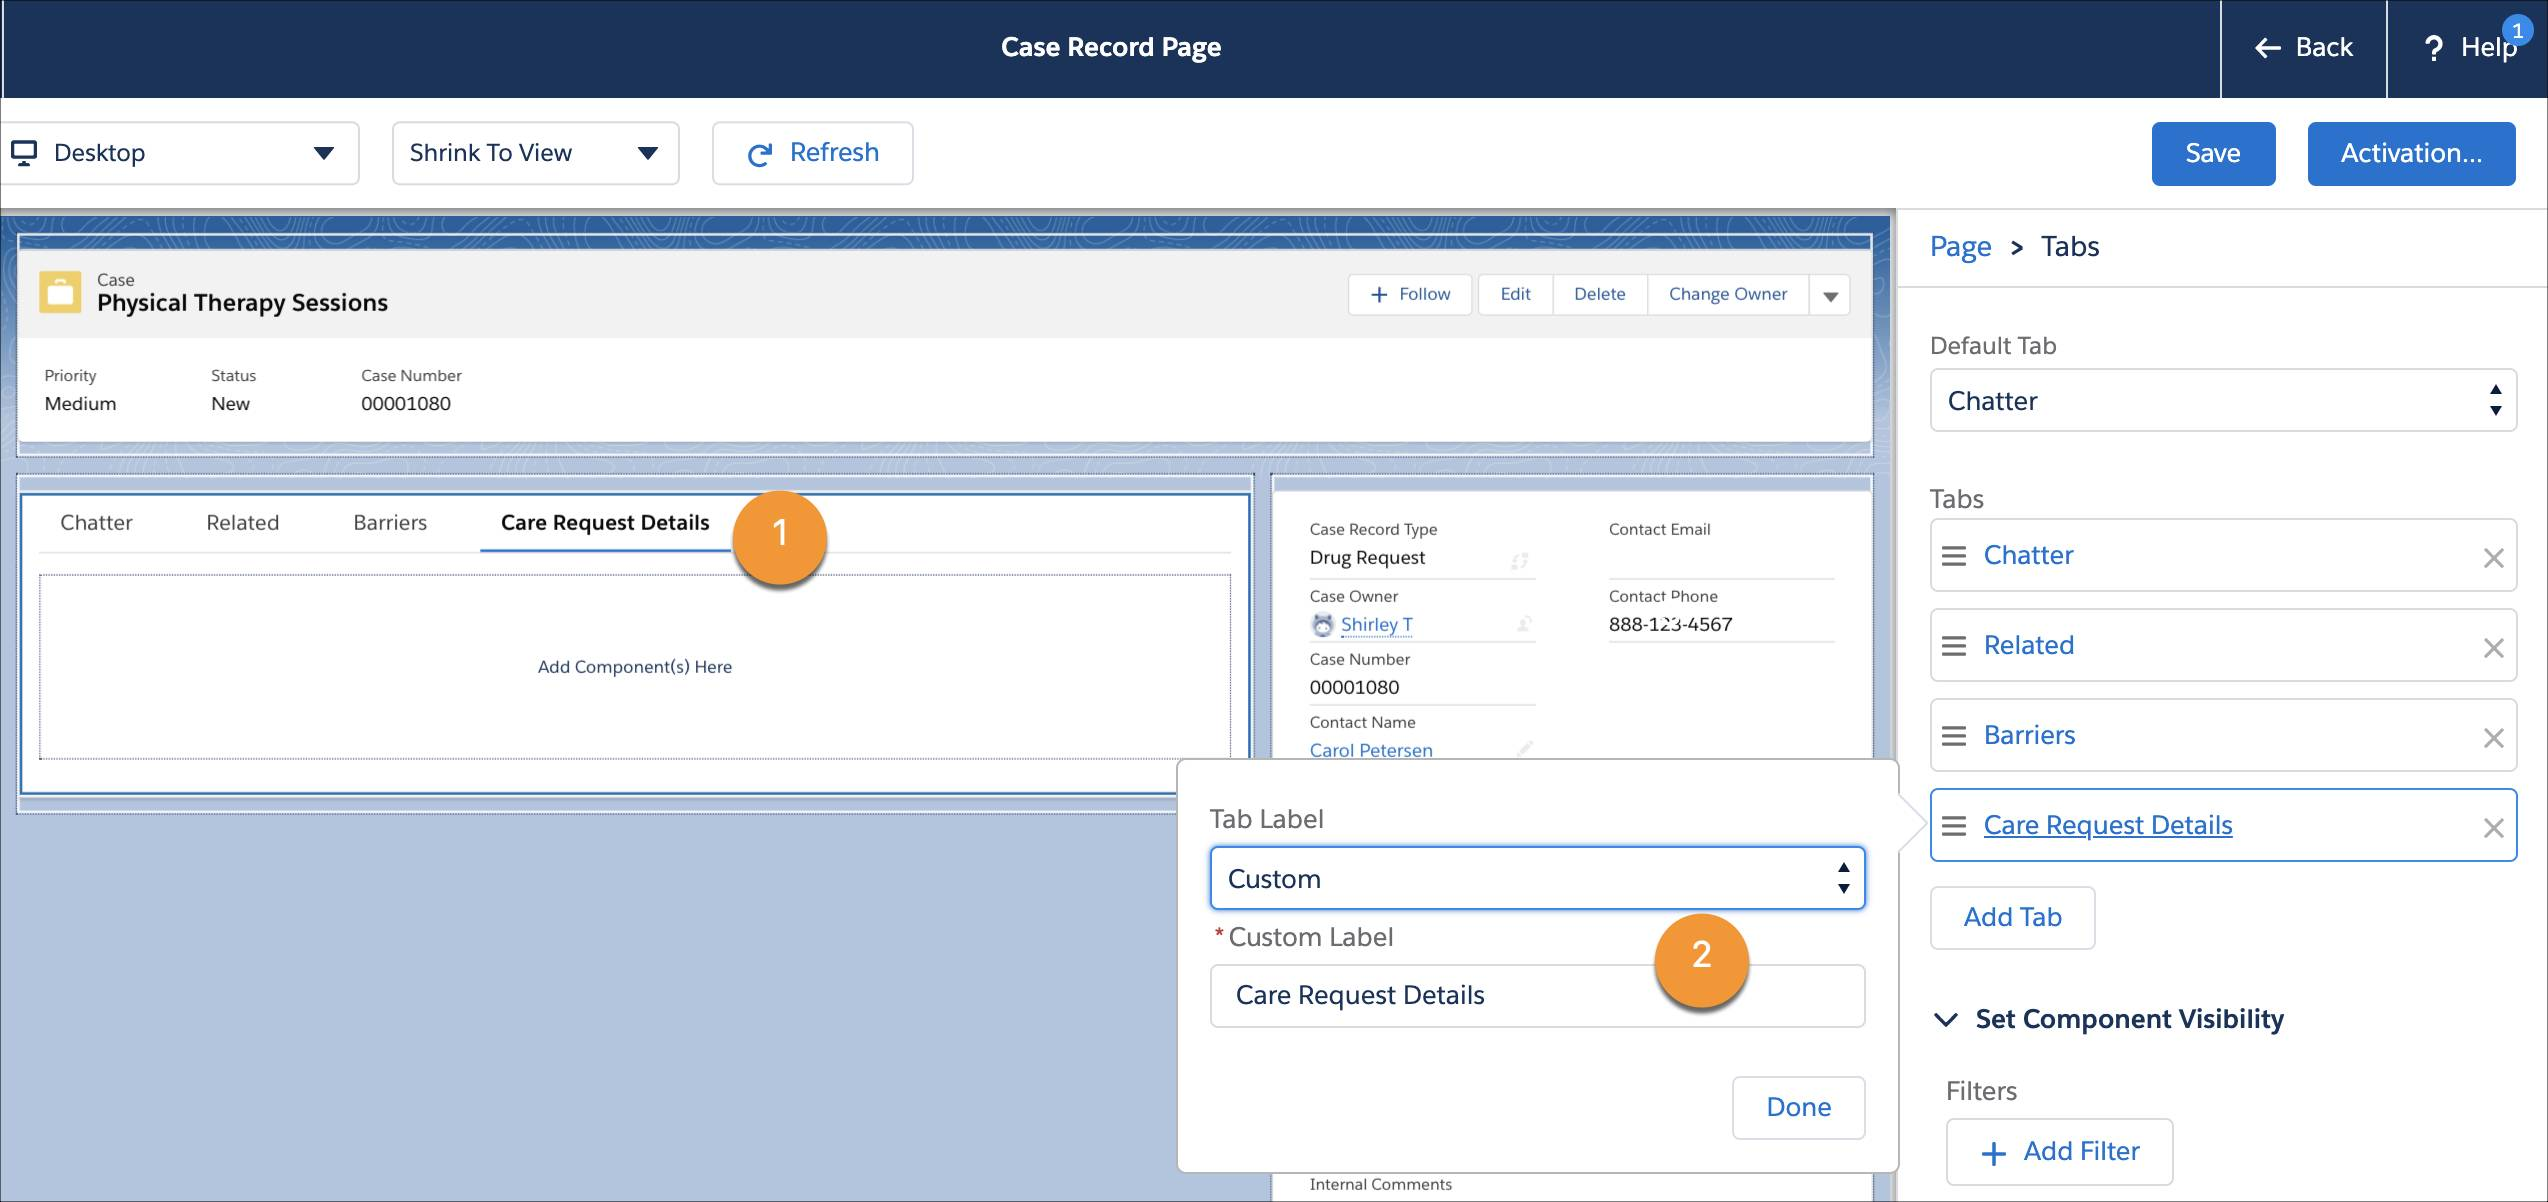 The Case Record Page showing the Care Request Details tab and a sample custom tab label.